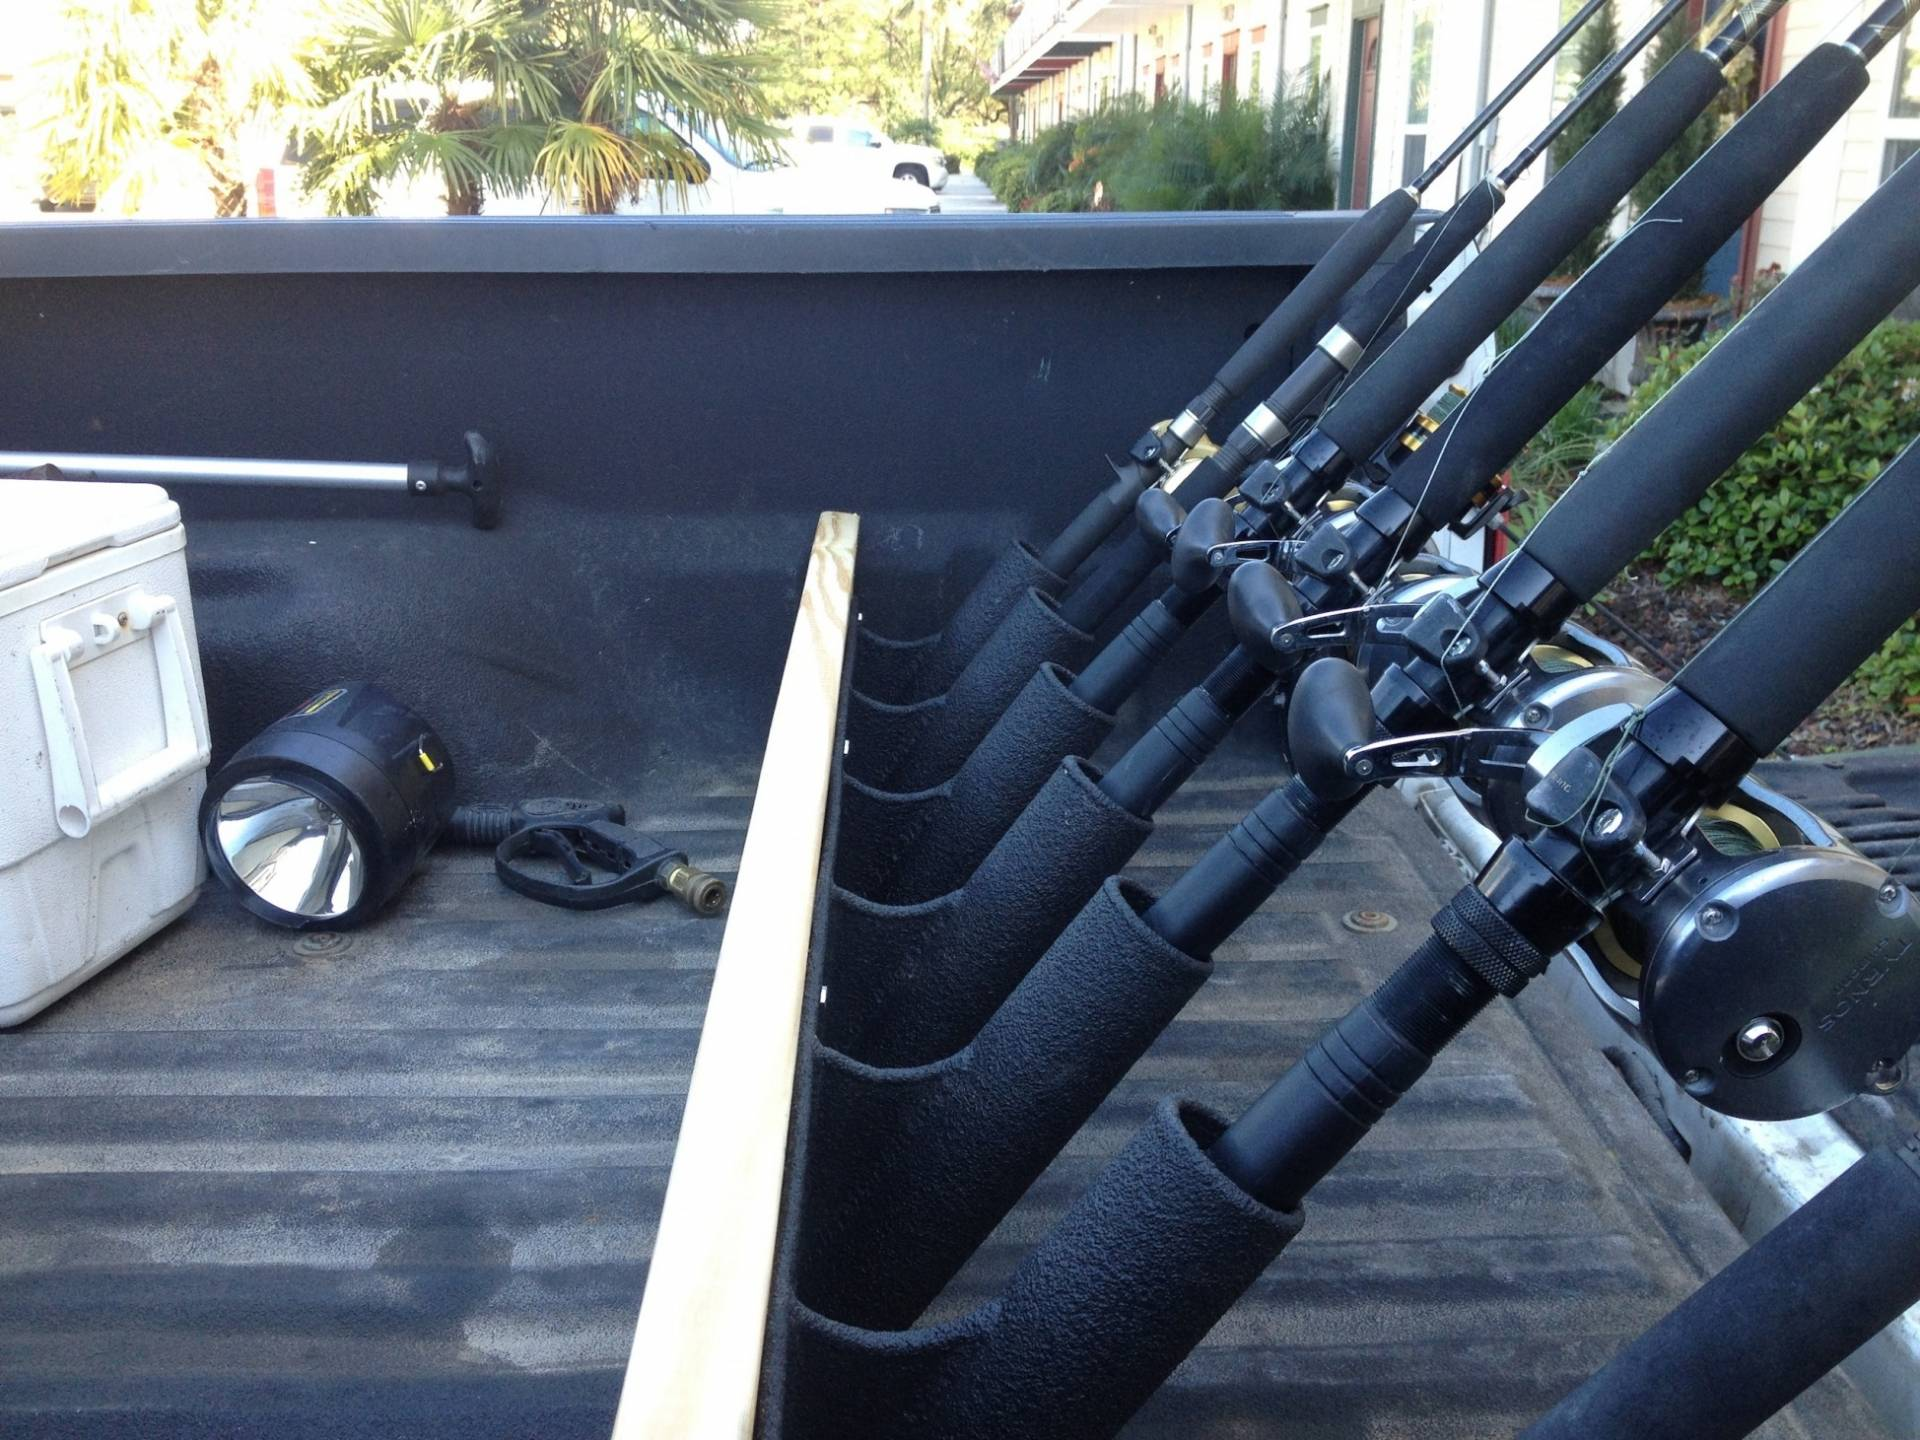 Truck bed rod holders rod rack bloodydecks for How many fishing rods per person in texas